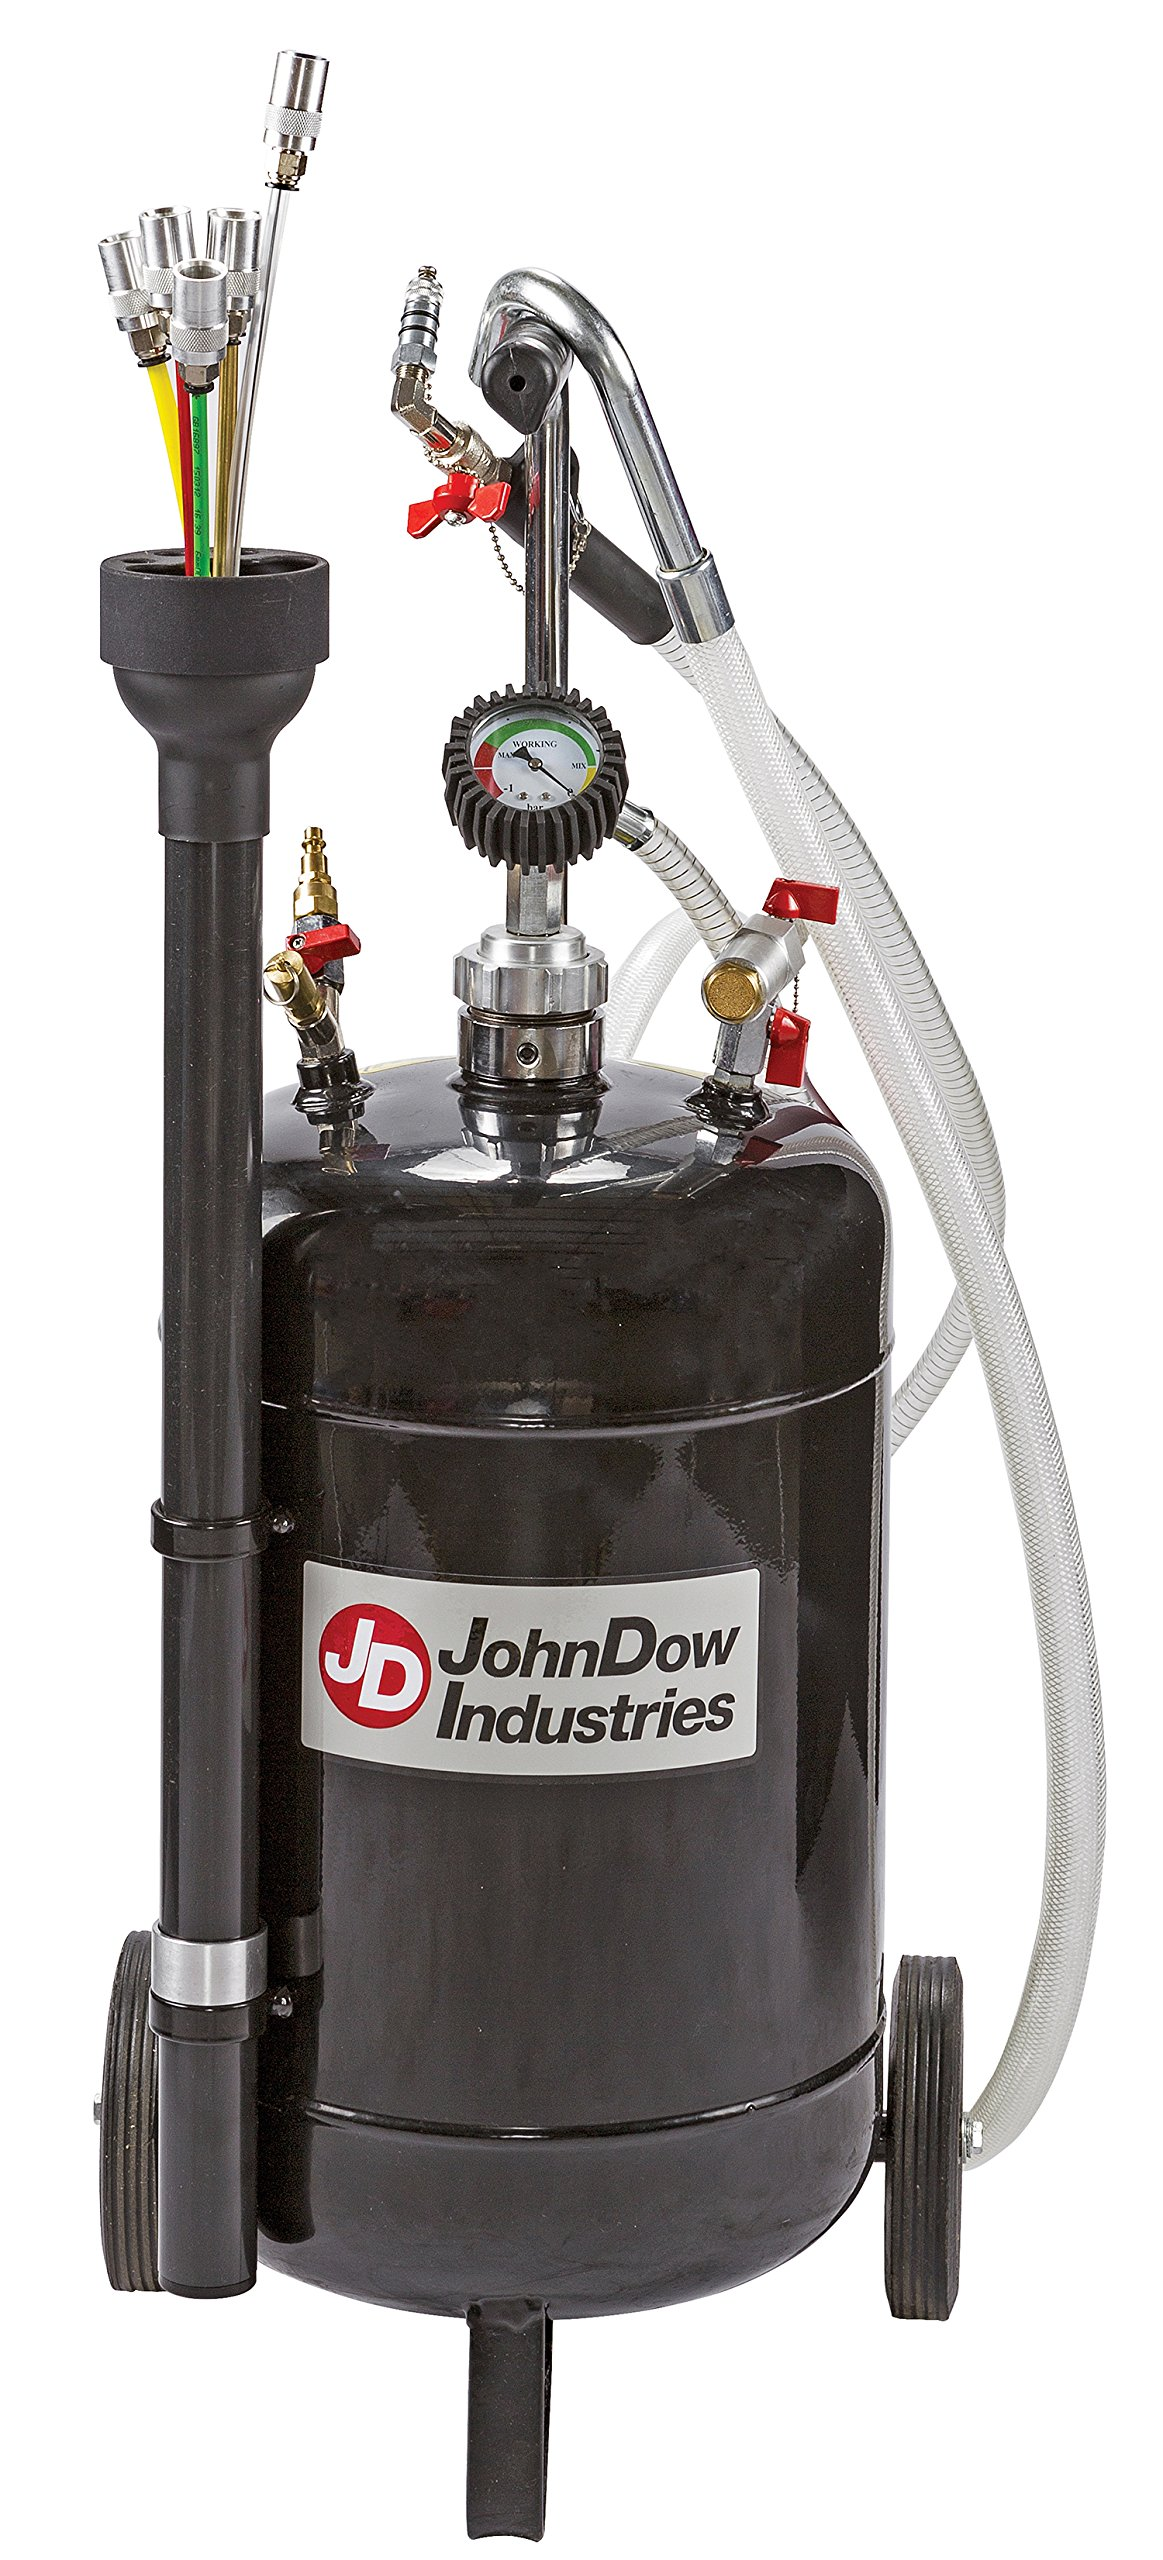 JohnDow Industries Crew Chief JDI-6EV 6 Gallon Fluid Evacuator by JohnDow Industries